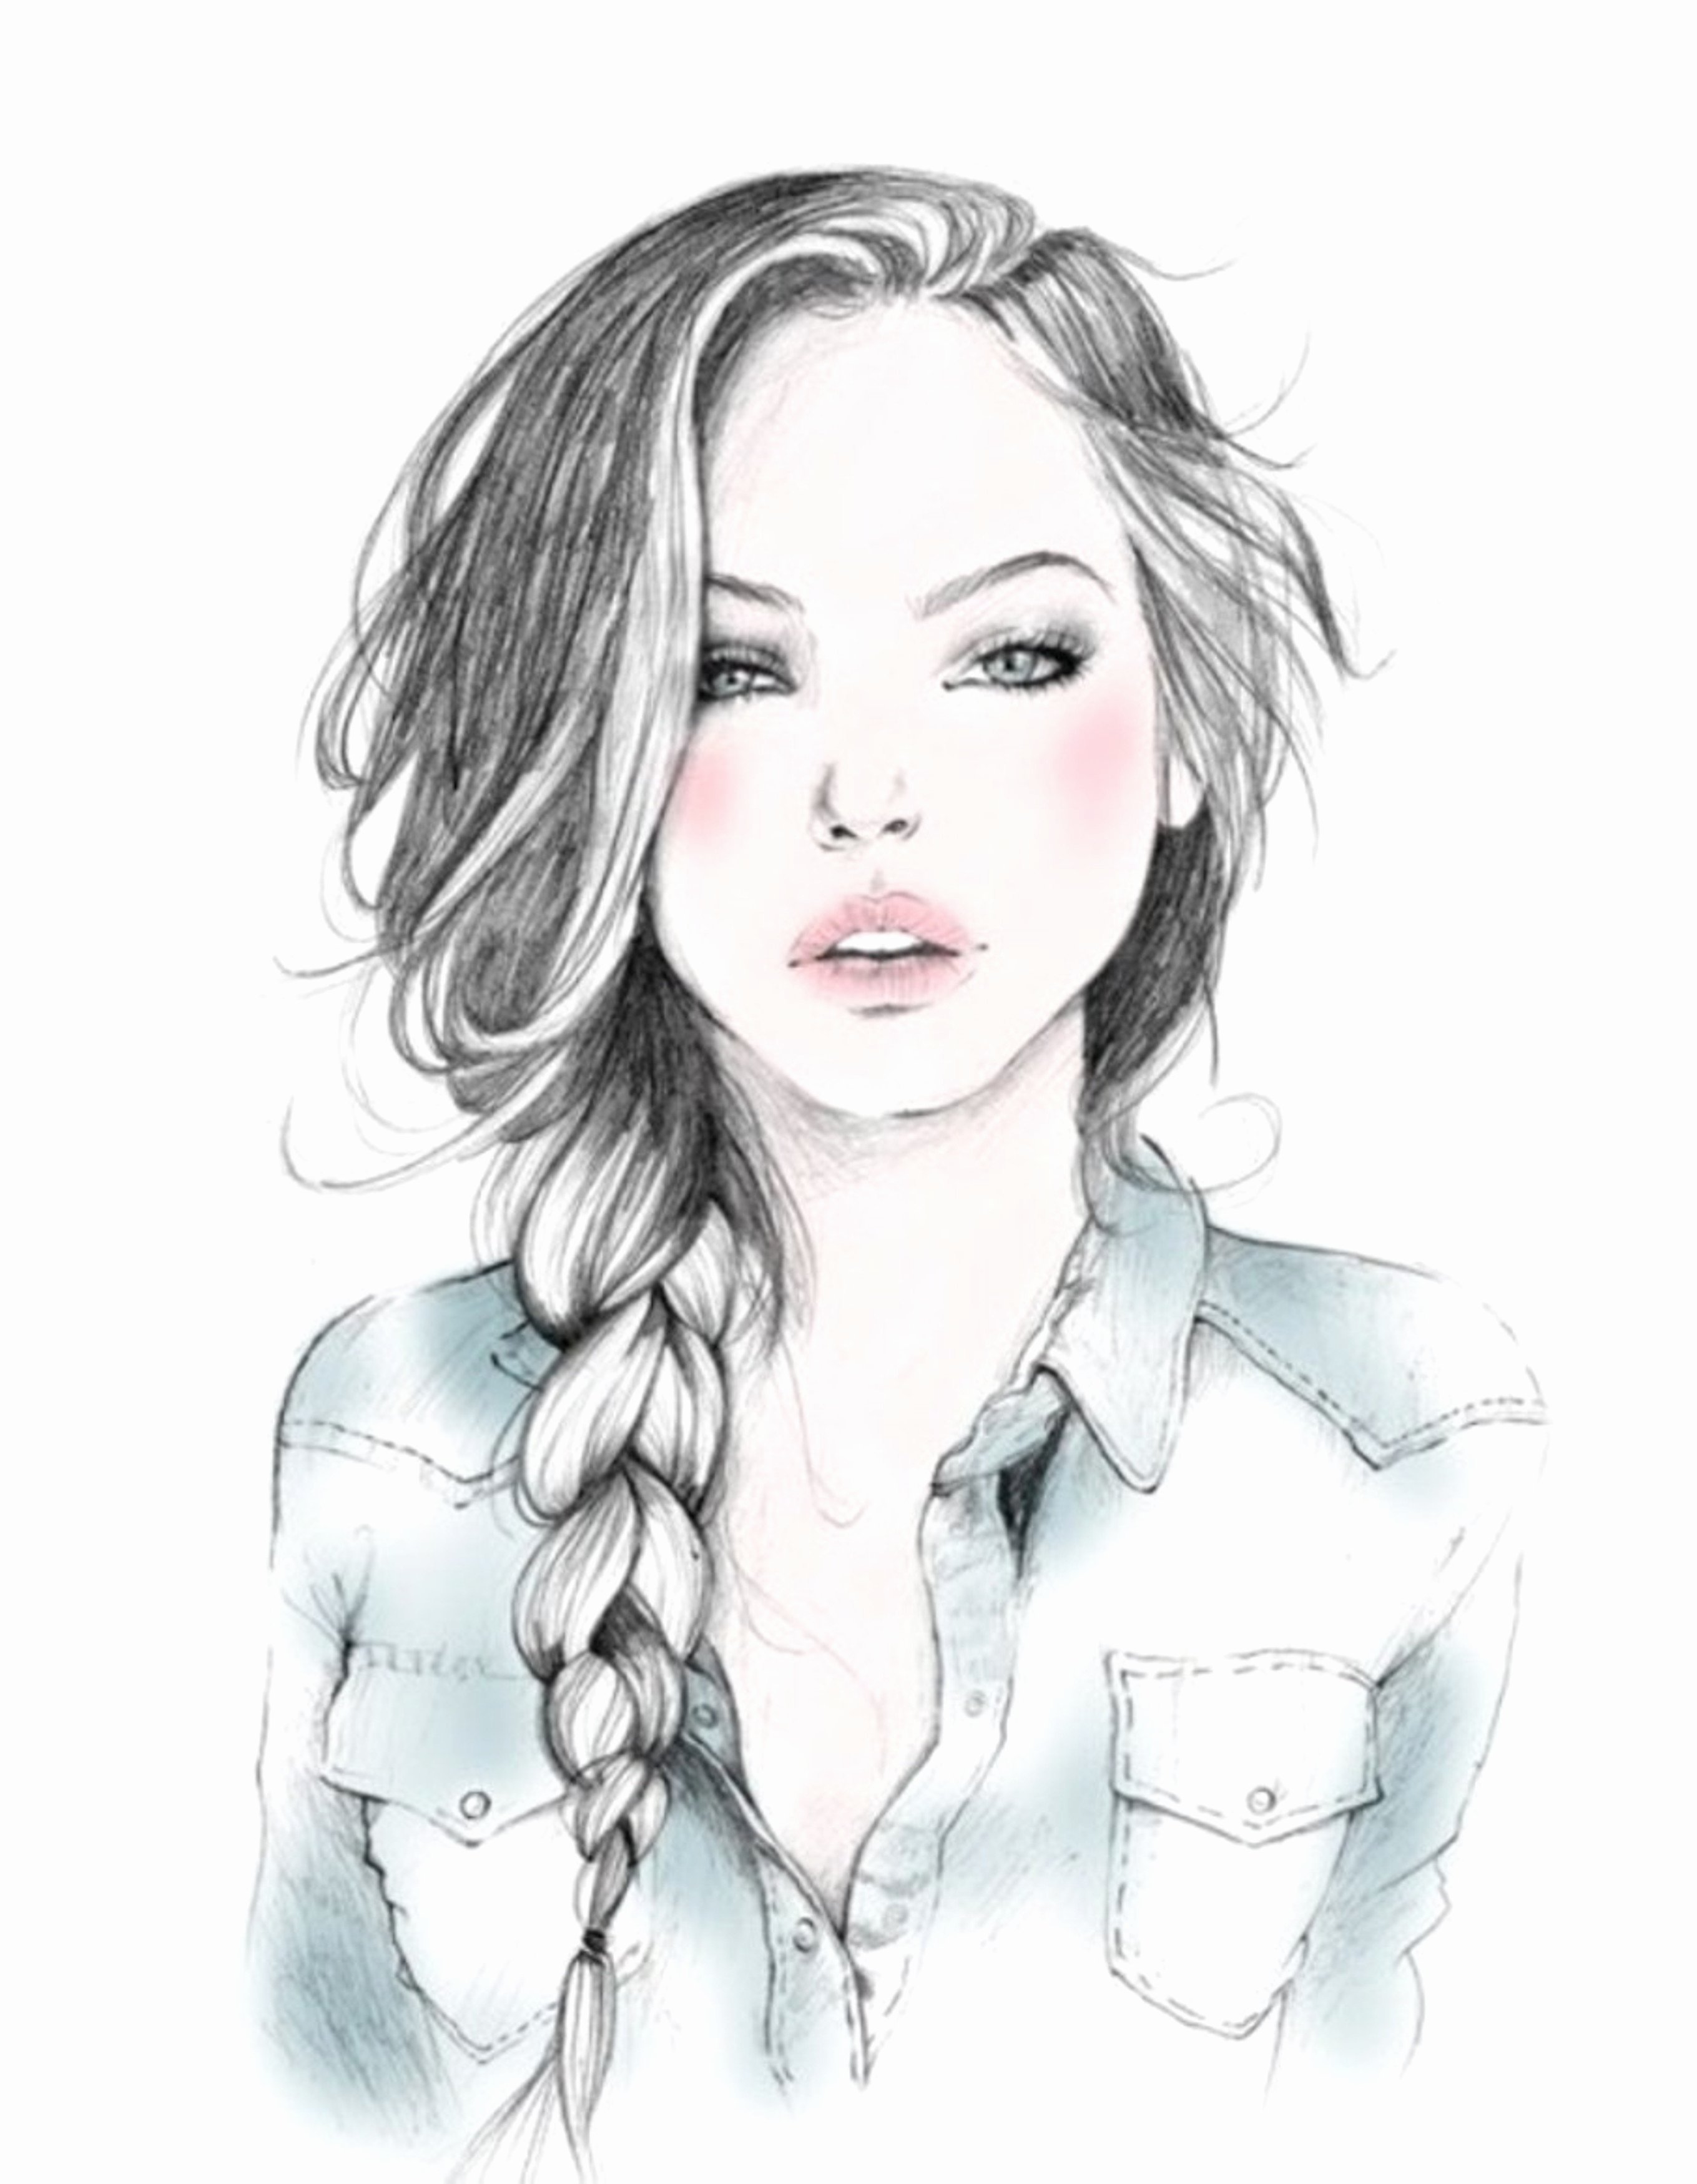 Drawing Of Beautiful Girls Inspirational Free Easy Girl Drawing Download Free Clip Art Free Clip Art On Clipart Library